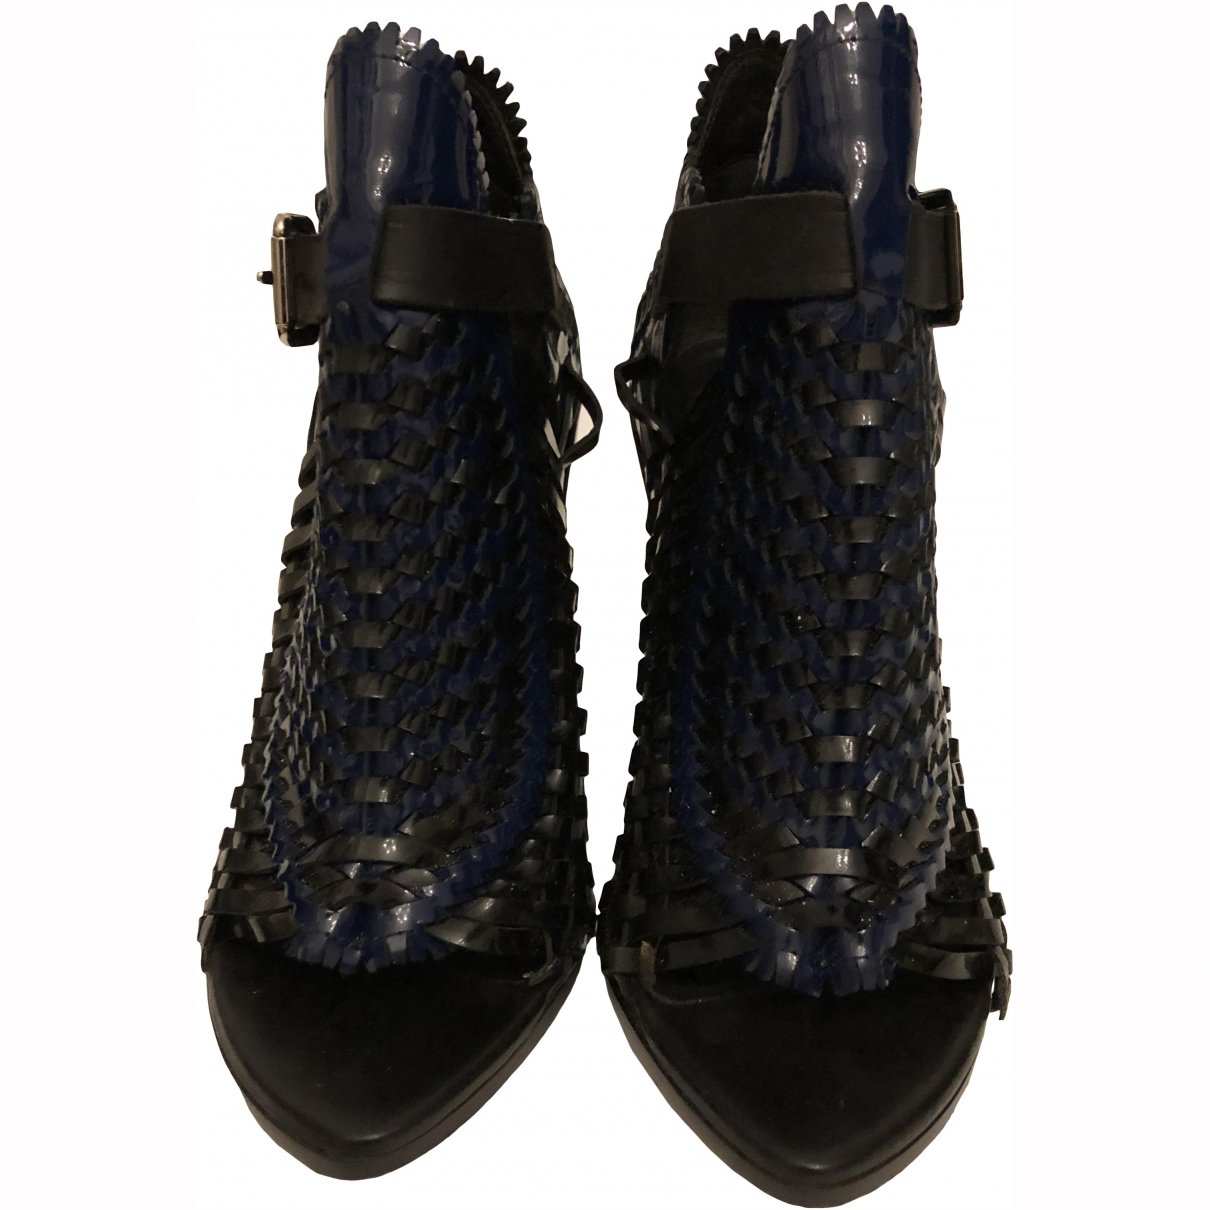 Proenza Schouler \N Black Patent leather Ankle boots for Women 39.5 EU